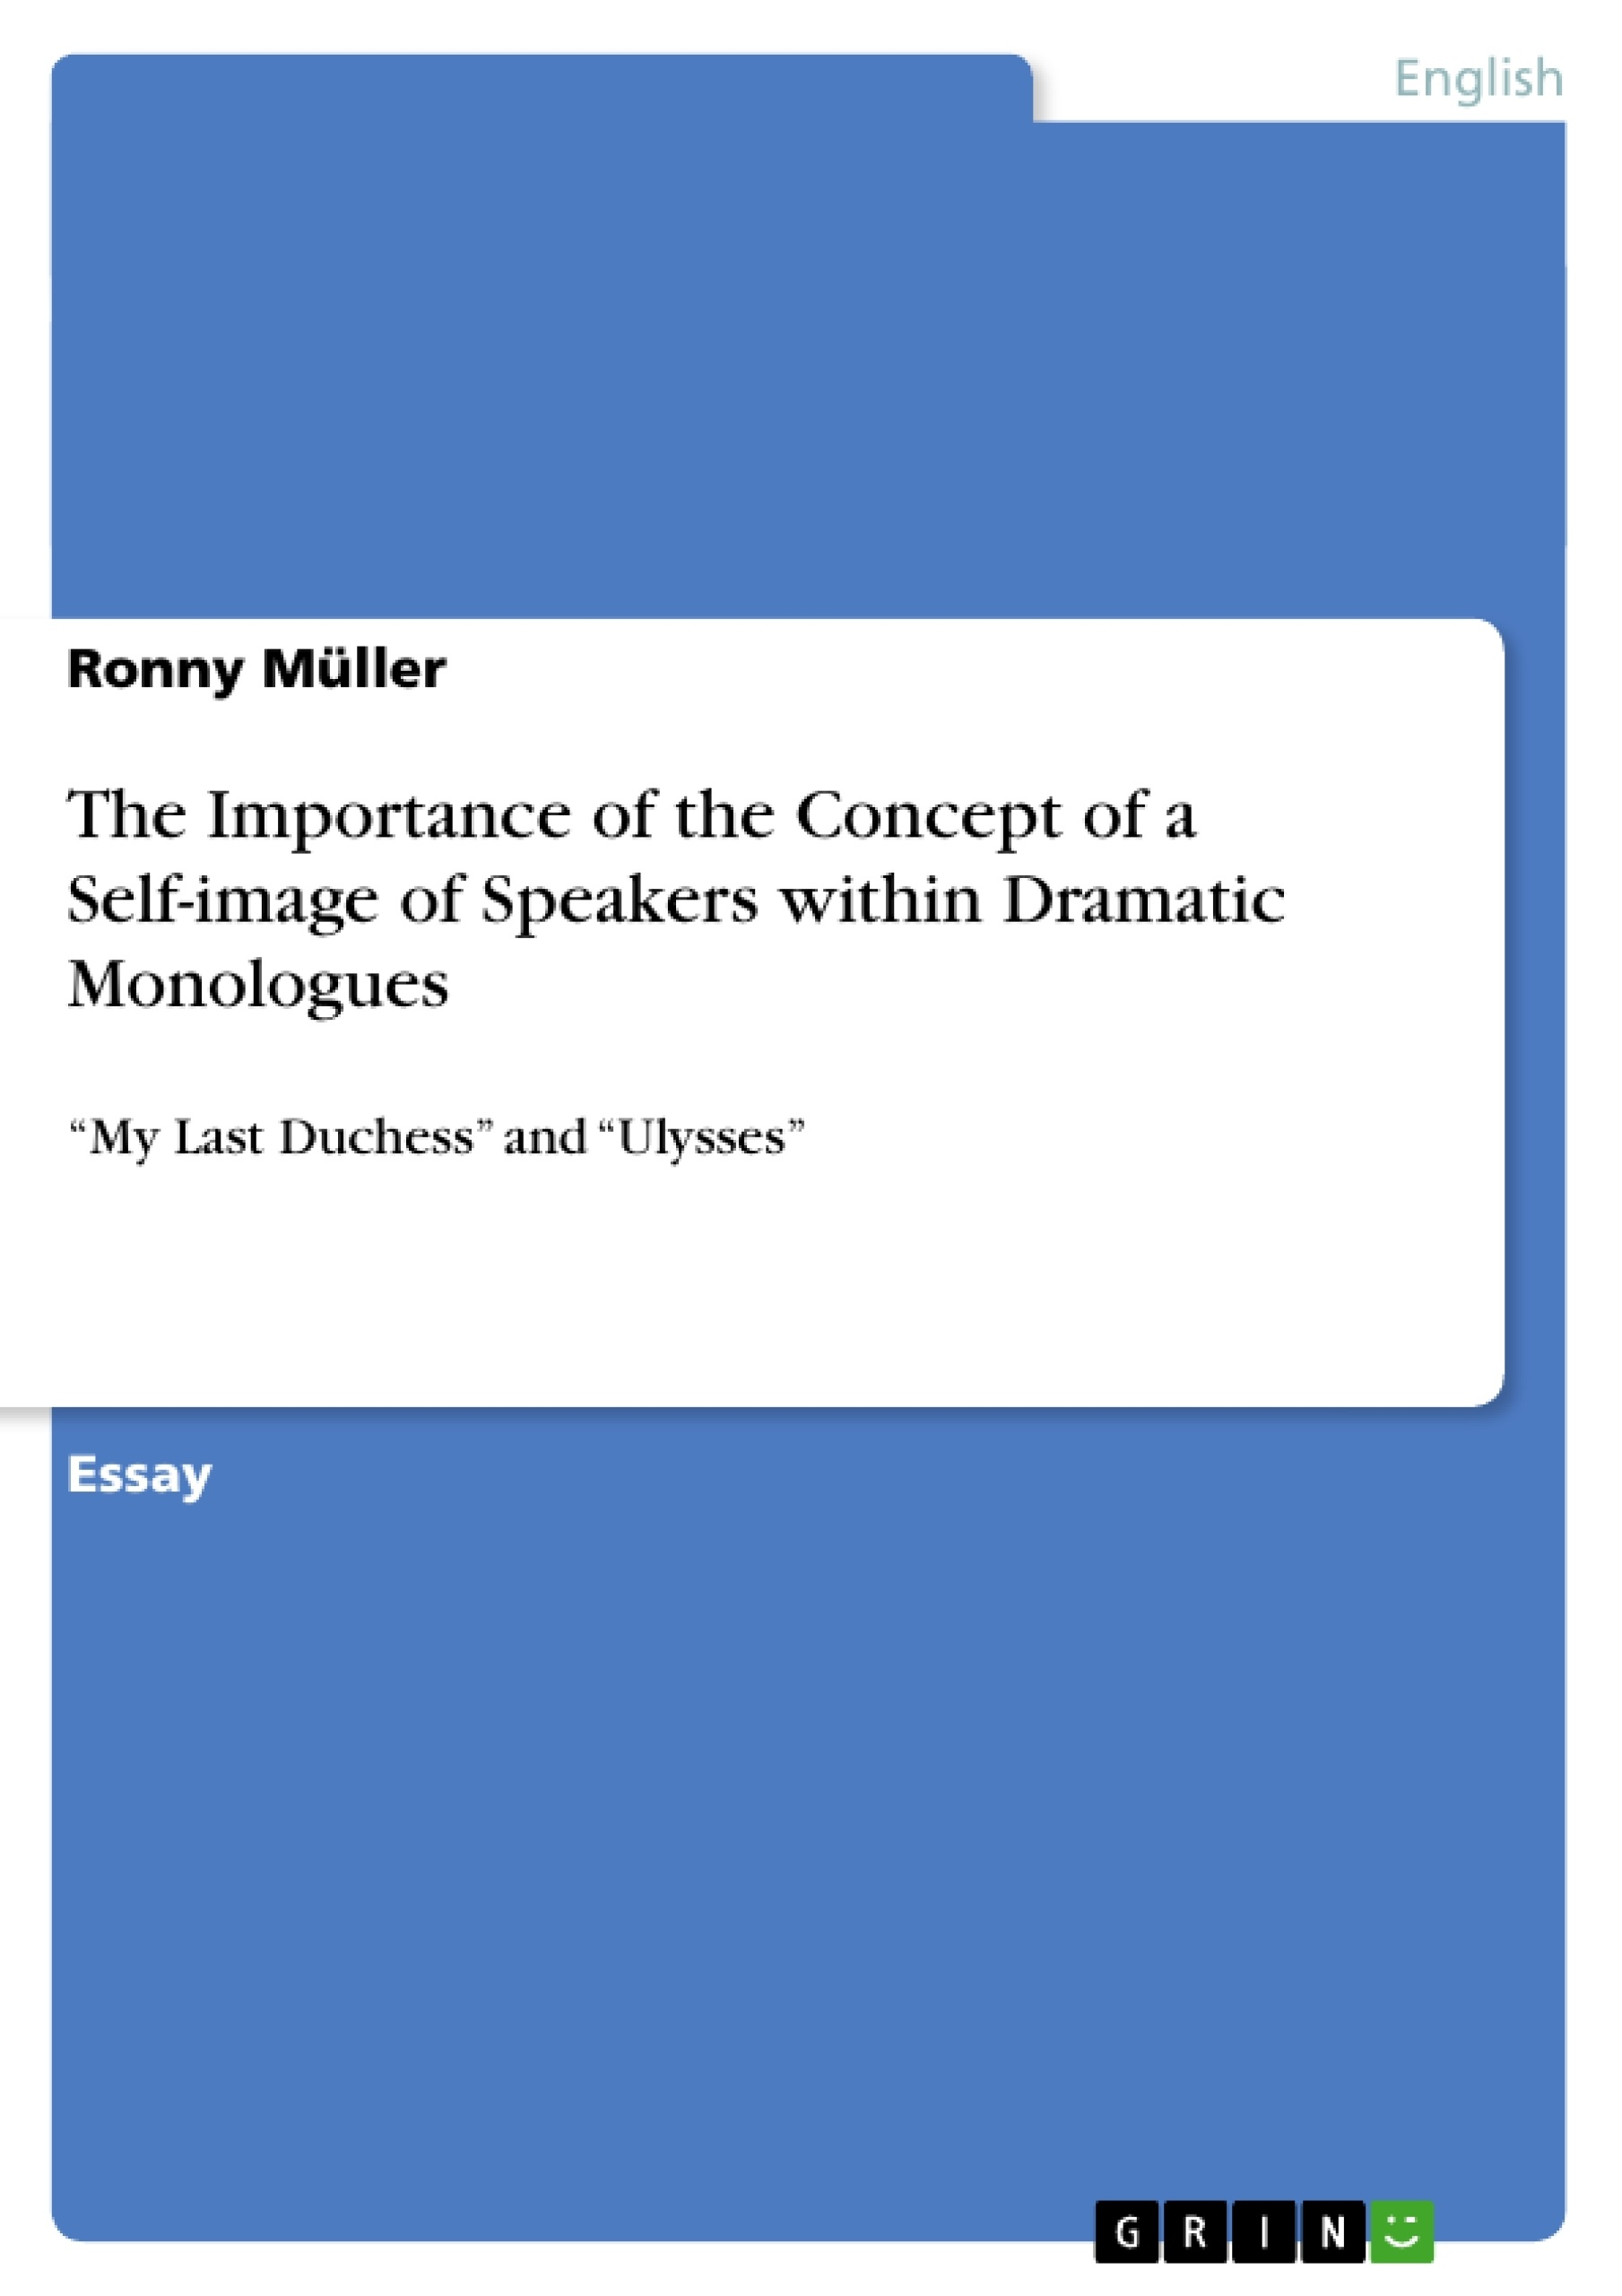 Title: The Importance of the Concept of a Self-image of Speakers within Dramatic Monologues